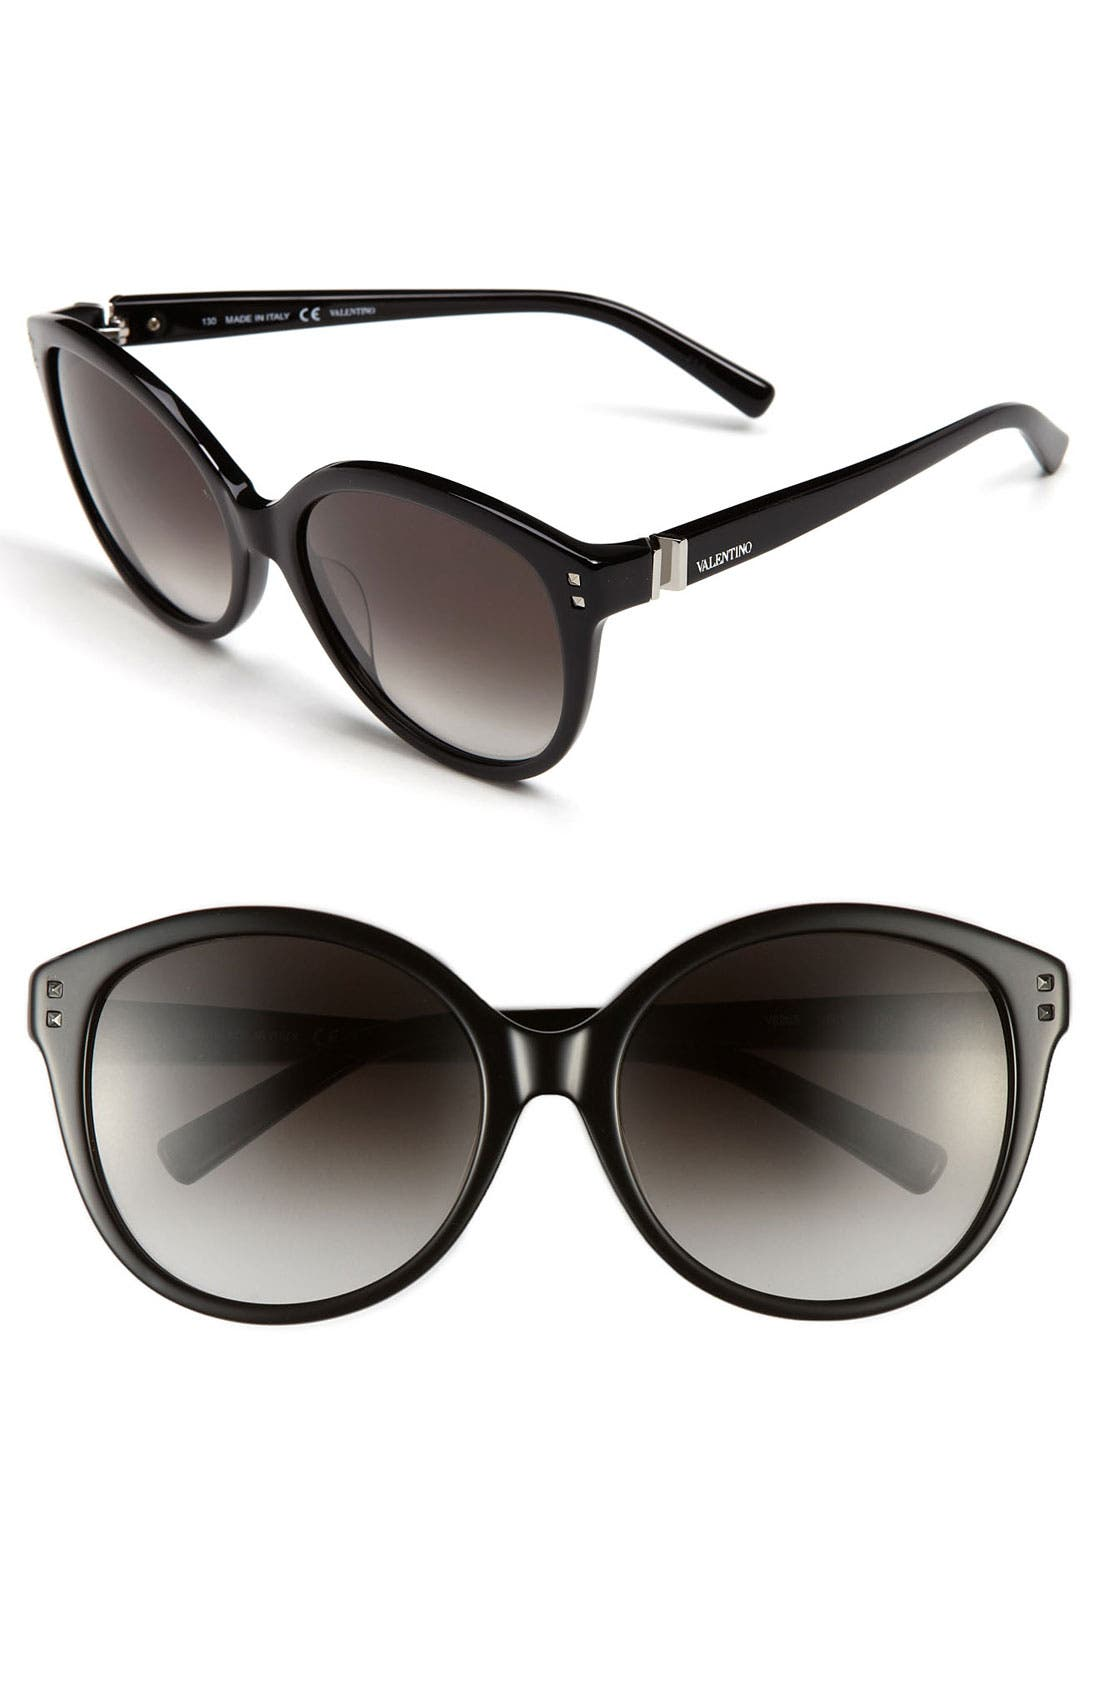 Main Image - Valentino 57mm Oversized Sunglasses